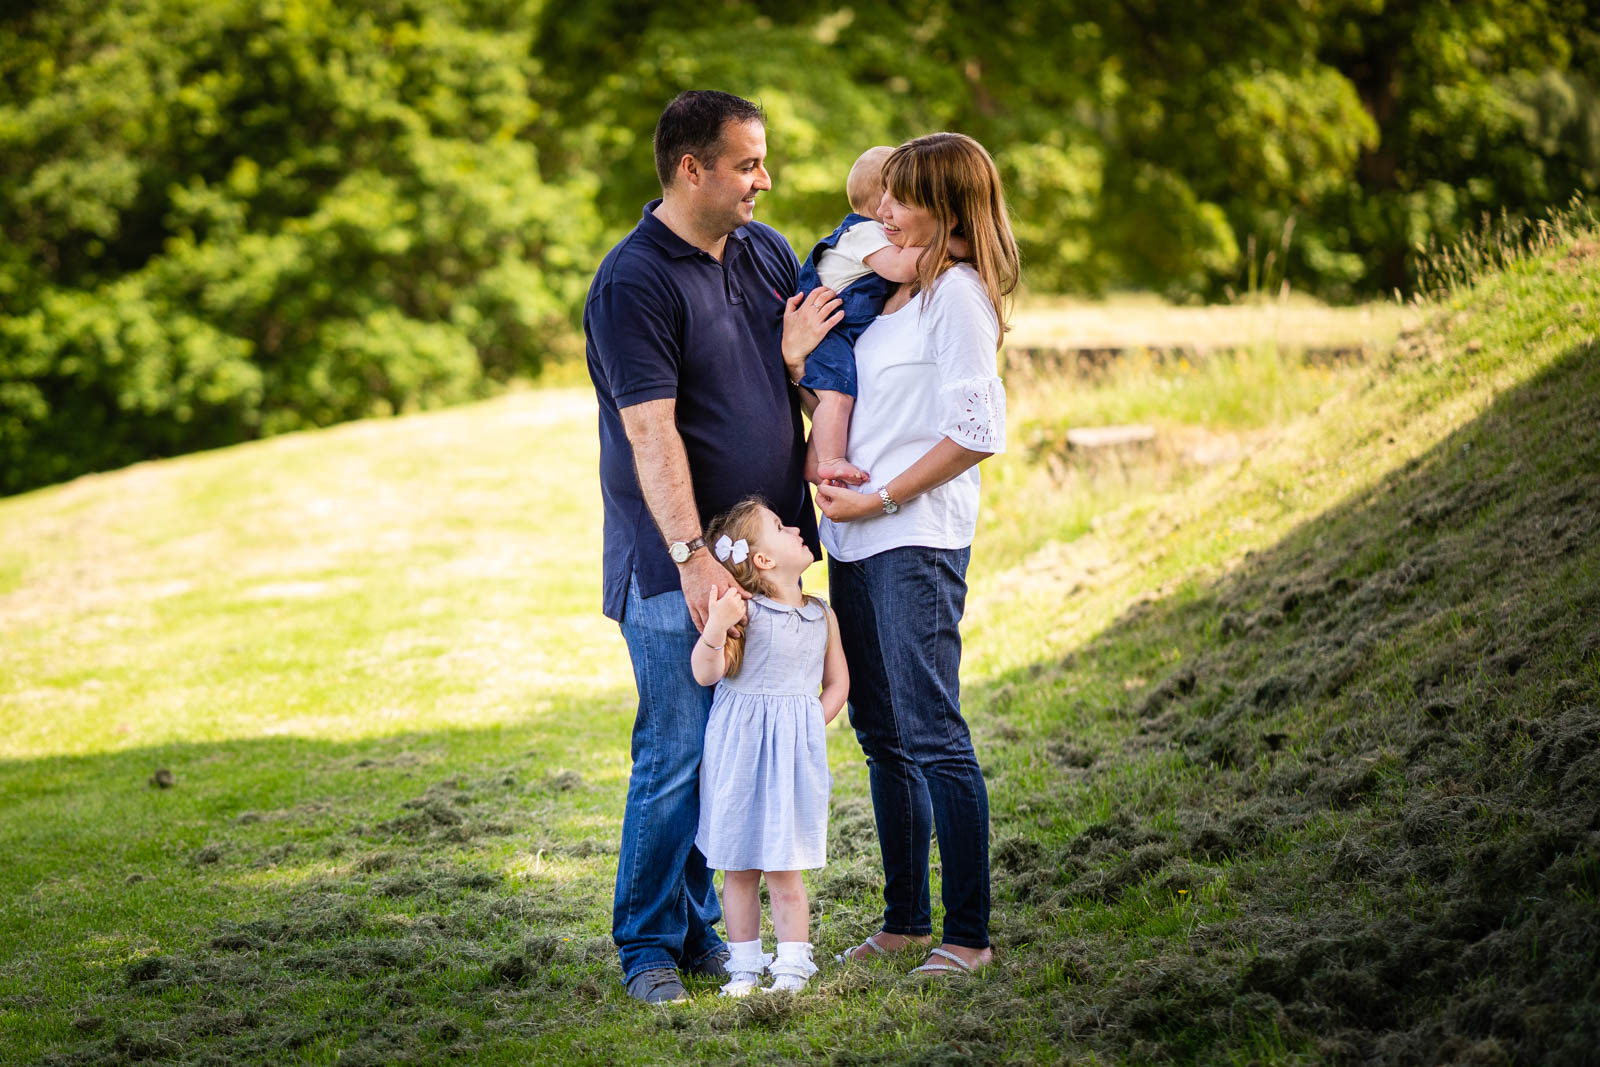 walker-family-session-bothwell-castle-glasgow-dearlyphotography (31 of 31).jpg